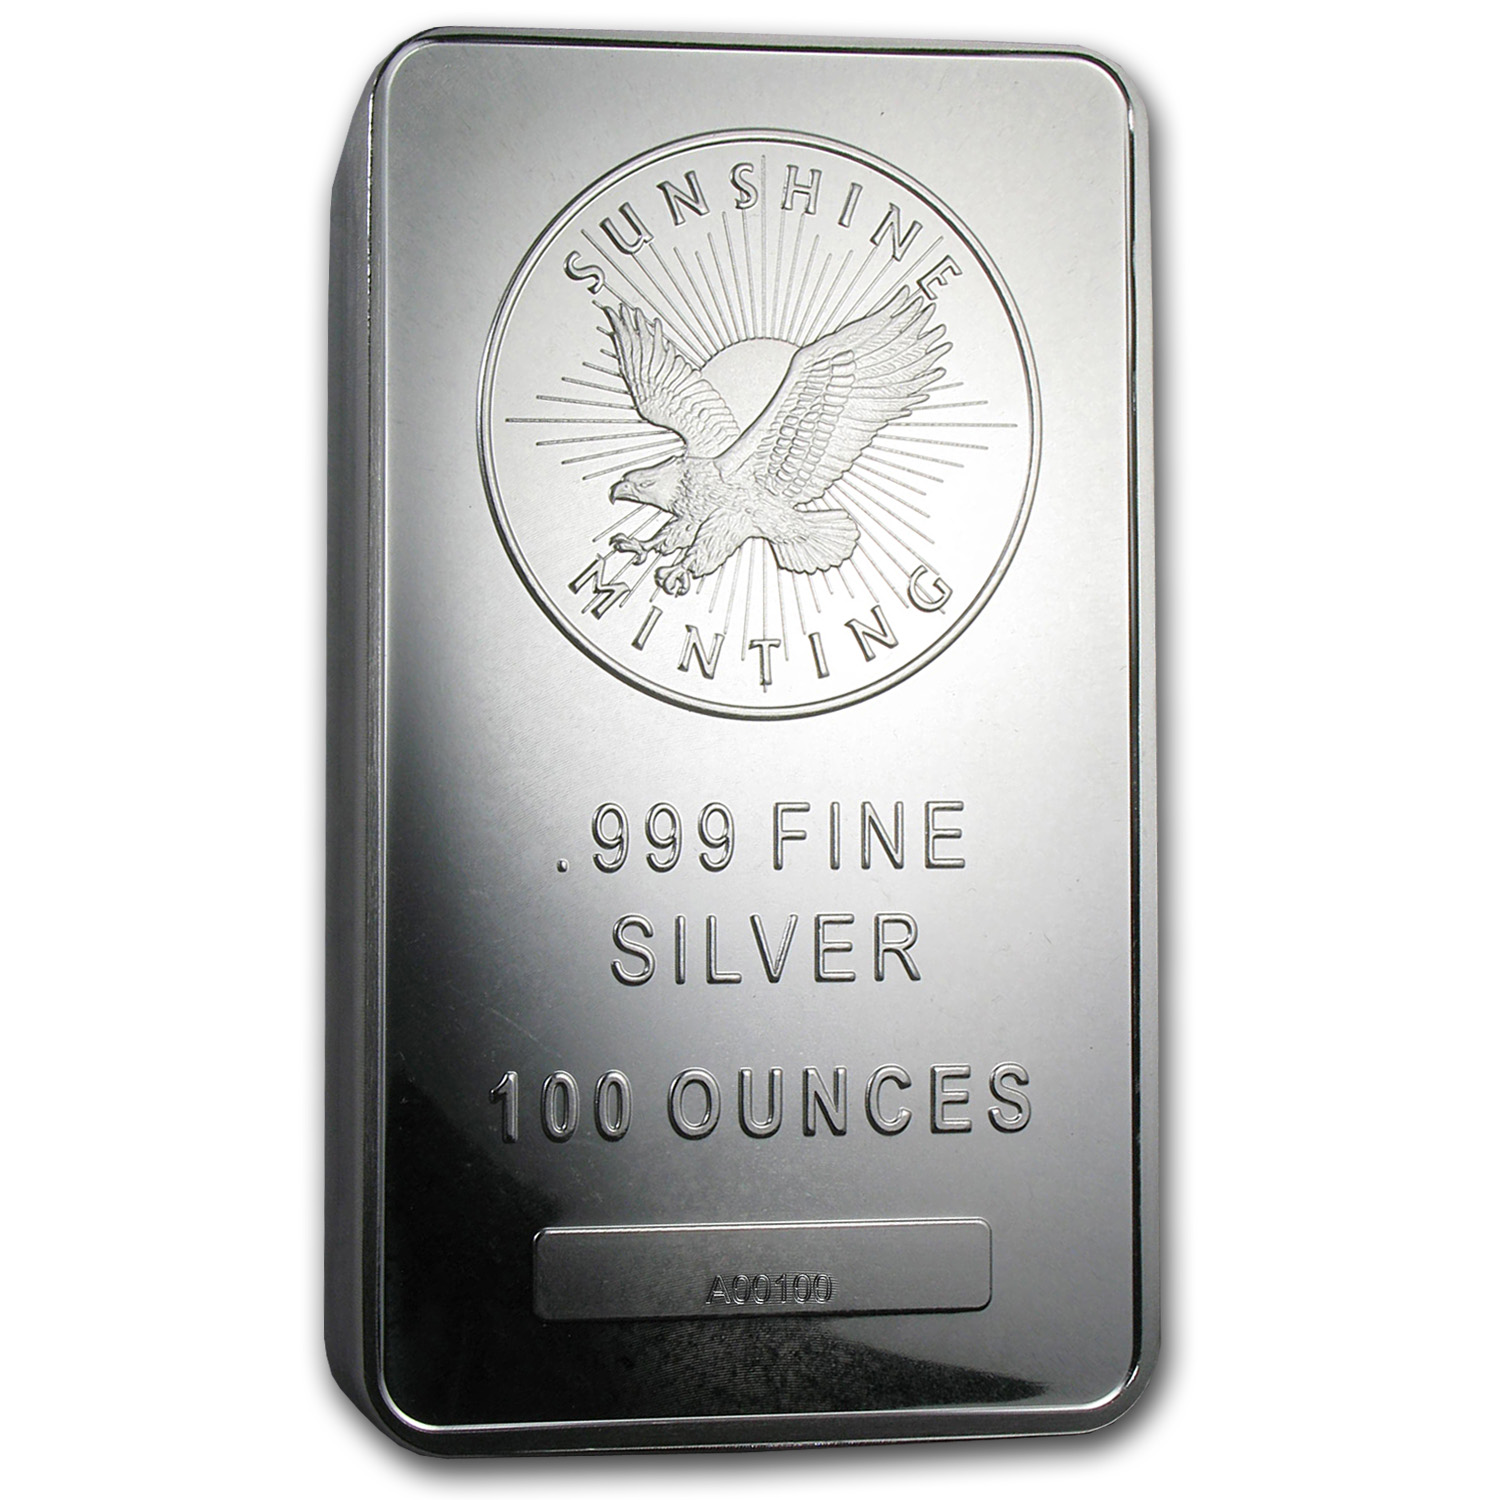 100 oz Silver Bars - Sunshine (V2) First - 100 bars ever!